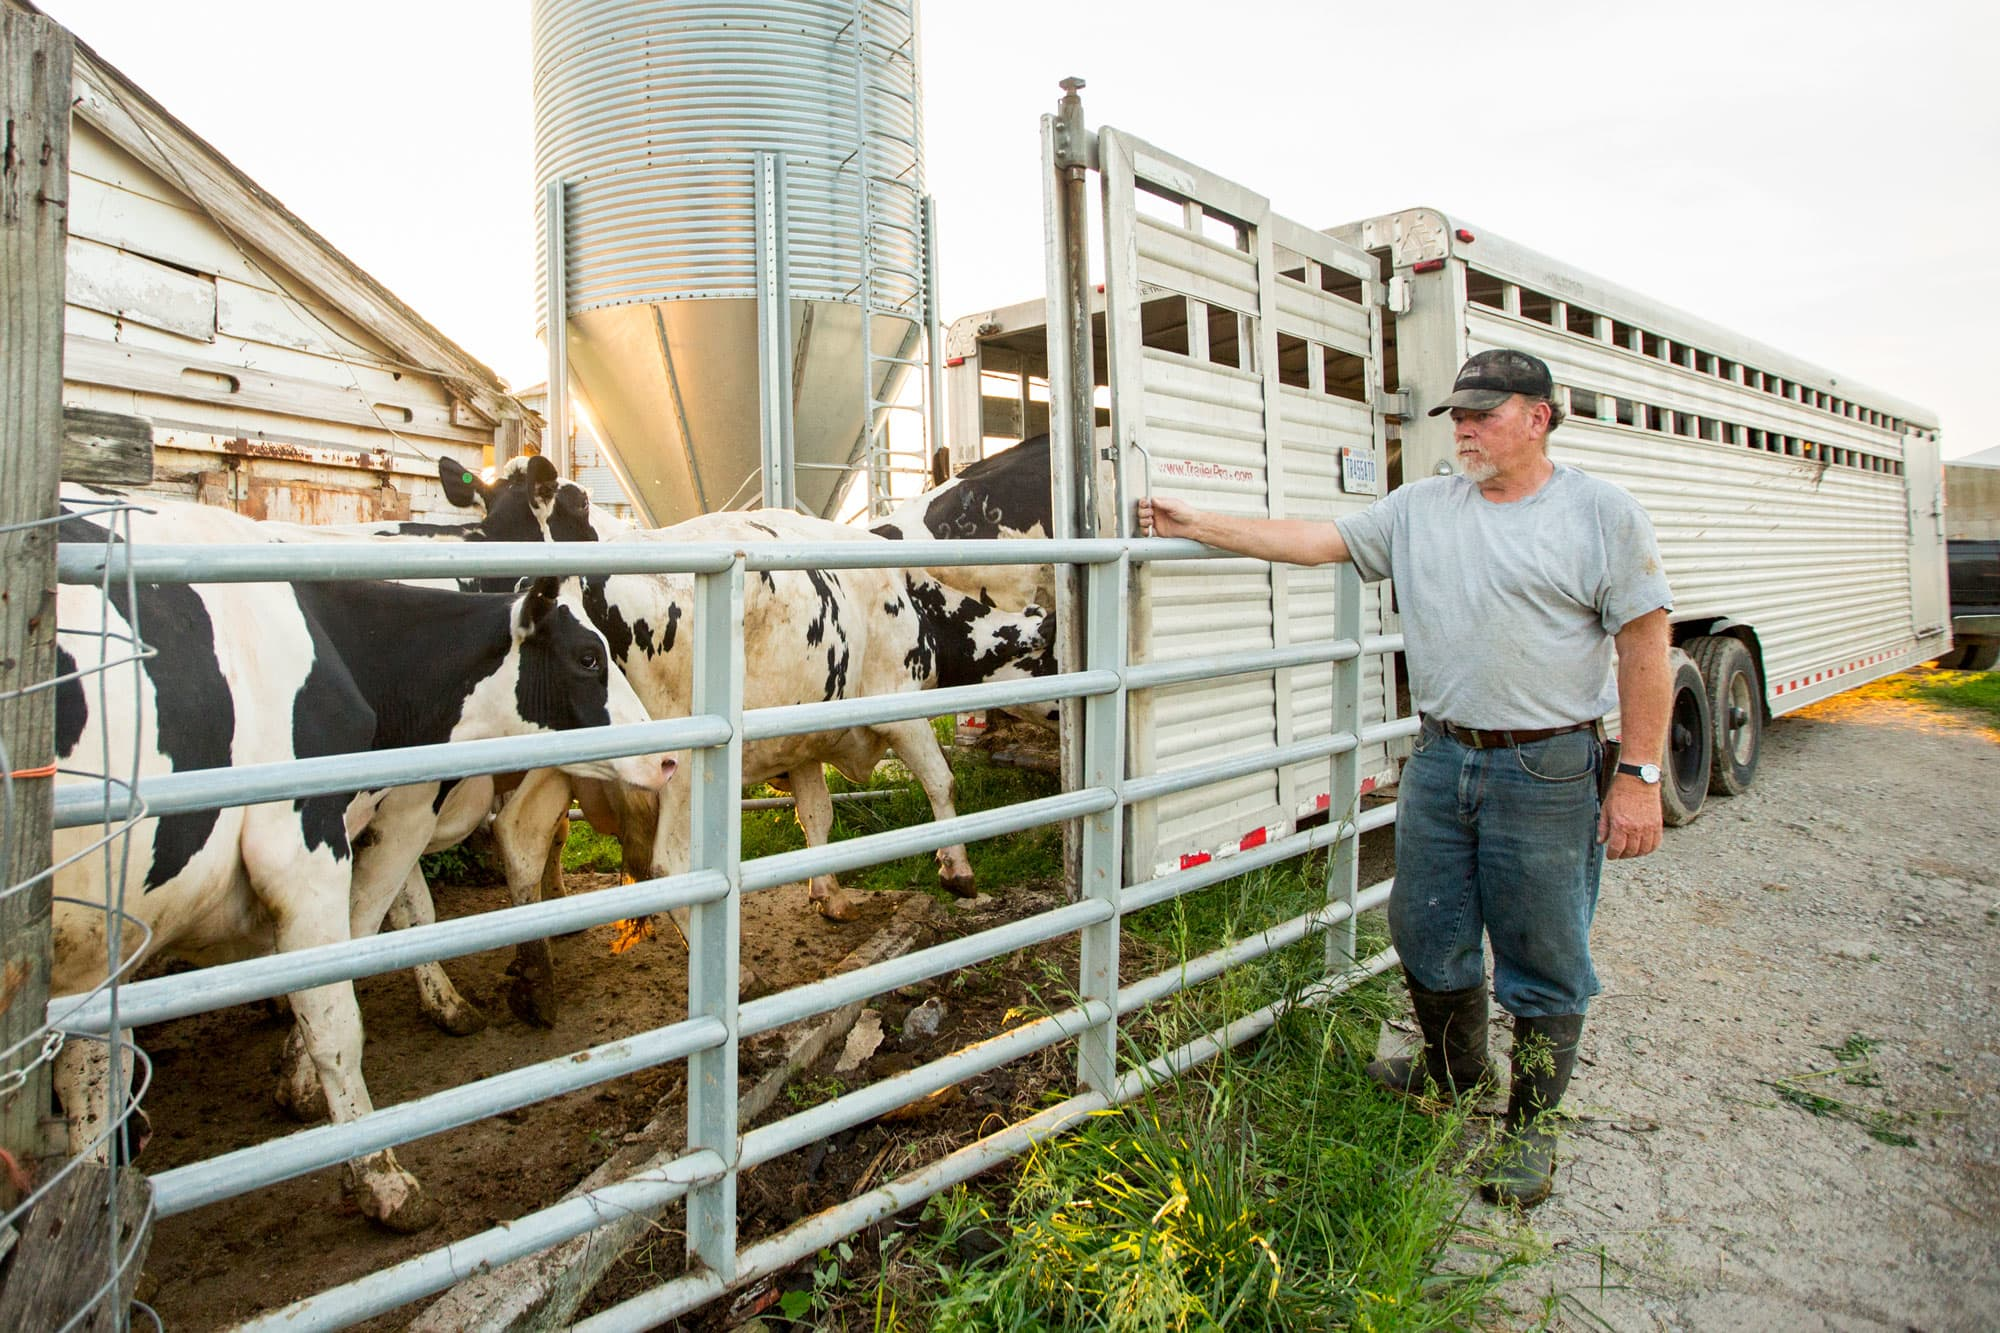 Dairy farmers are struggling as they are squeezed out of a